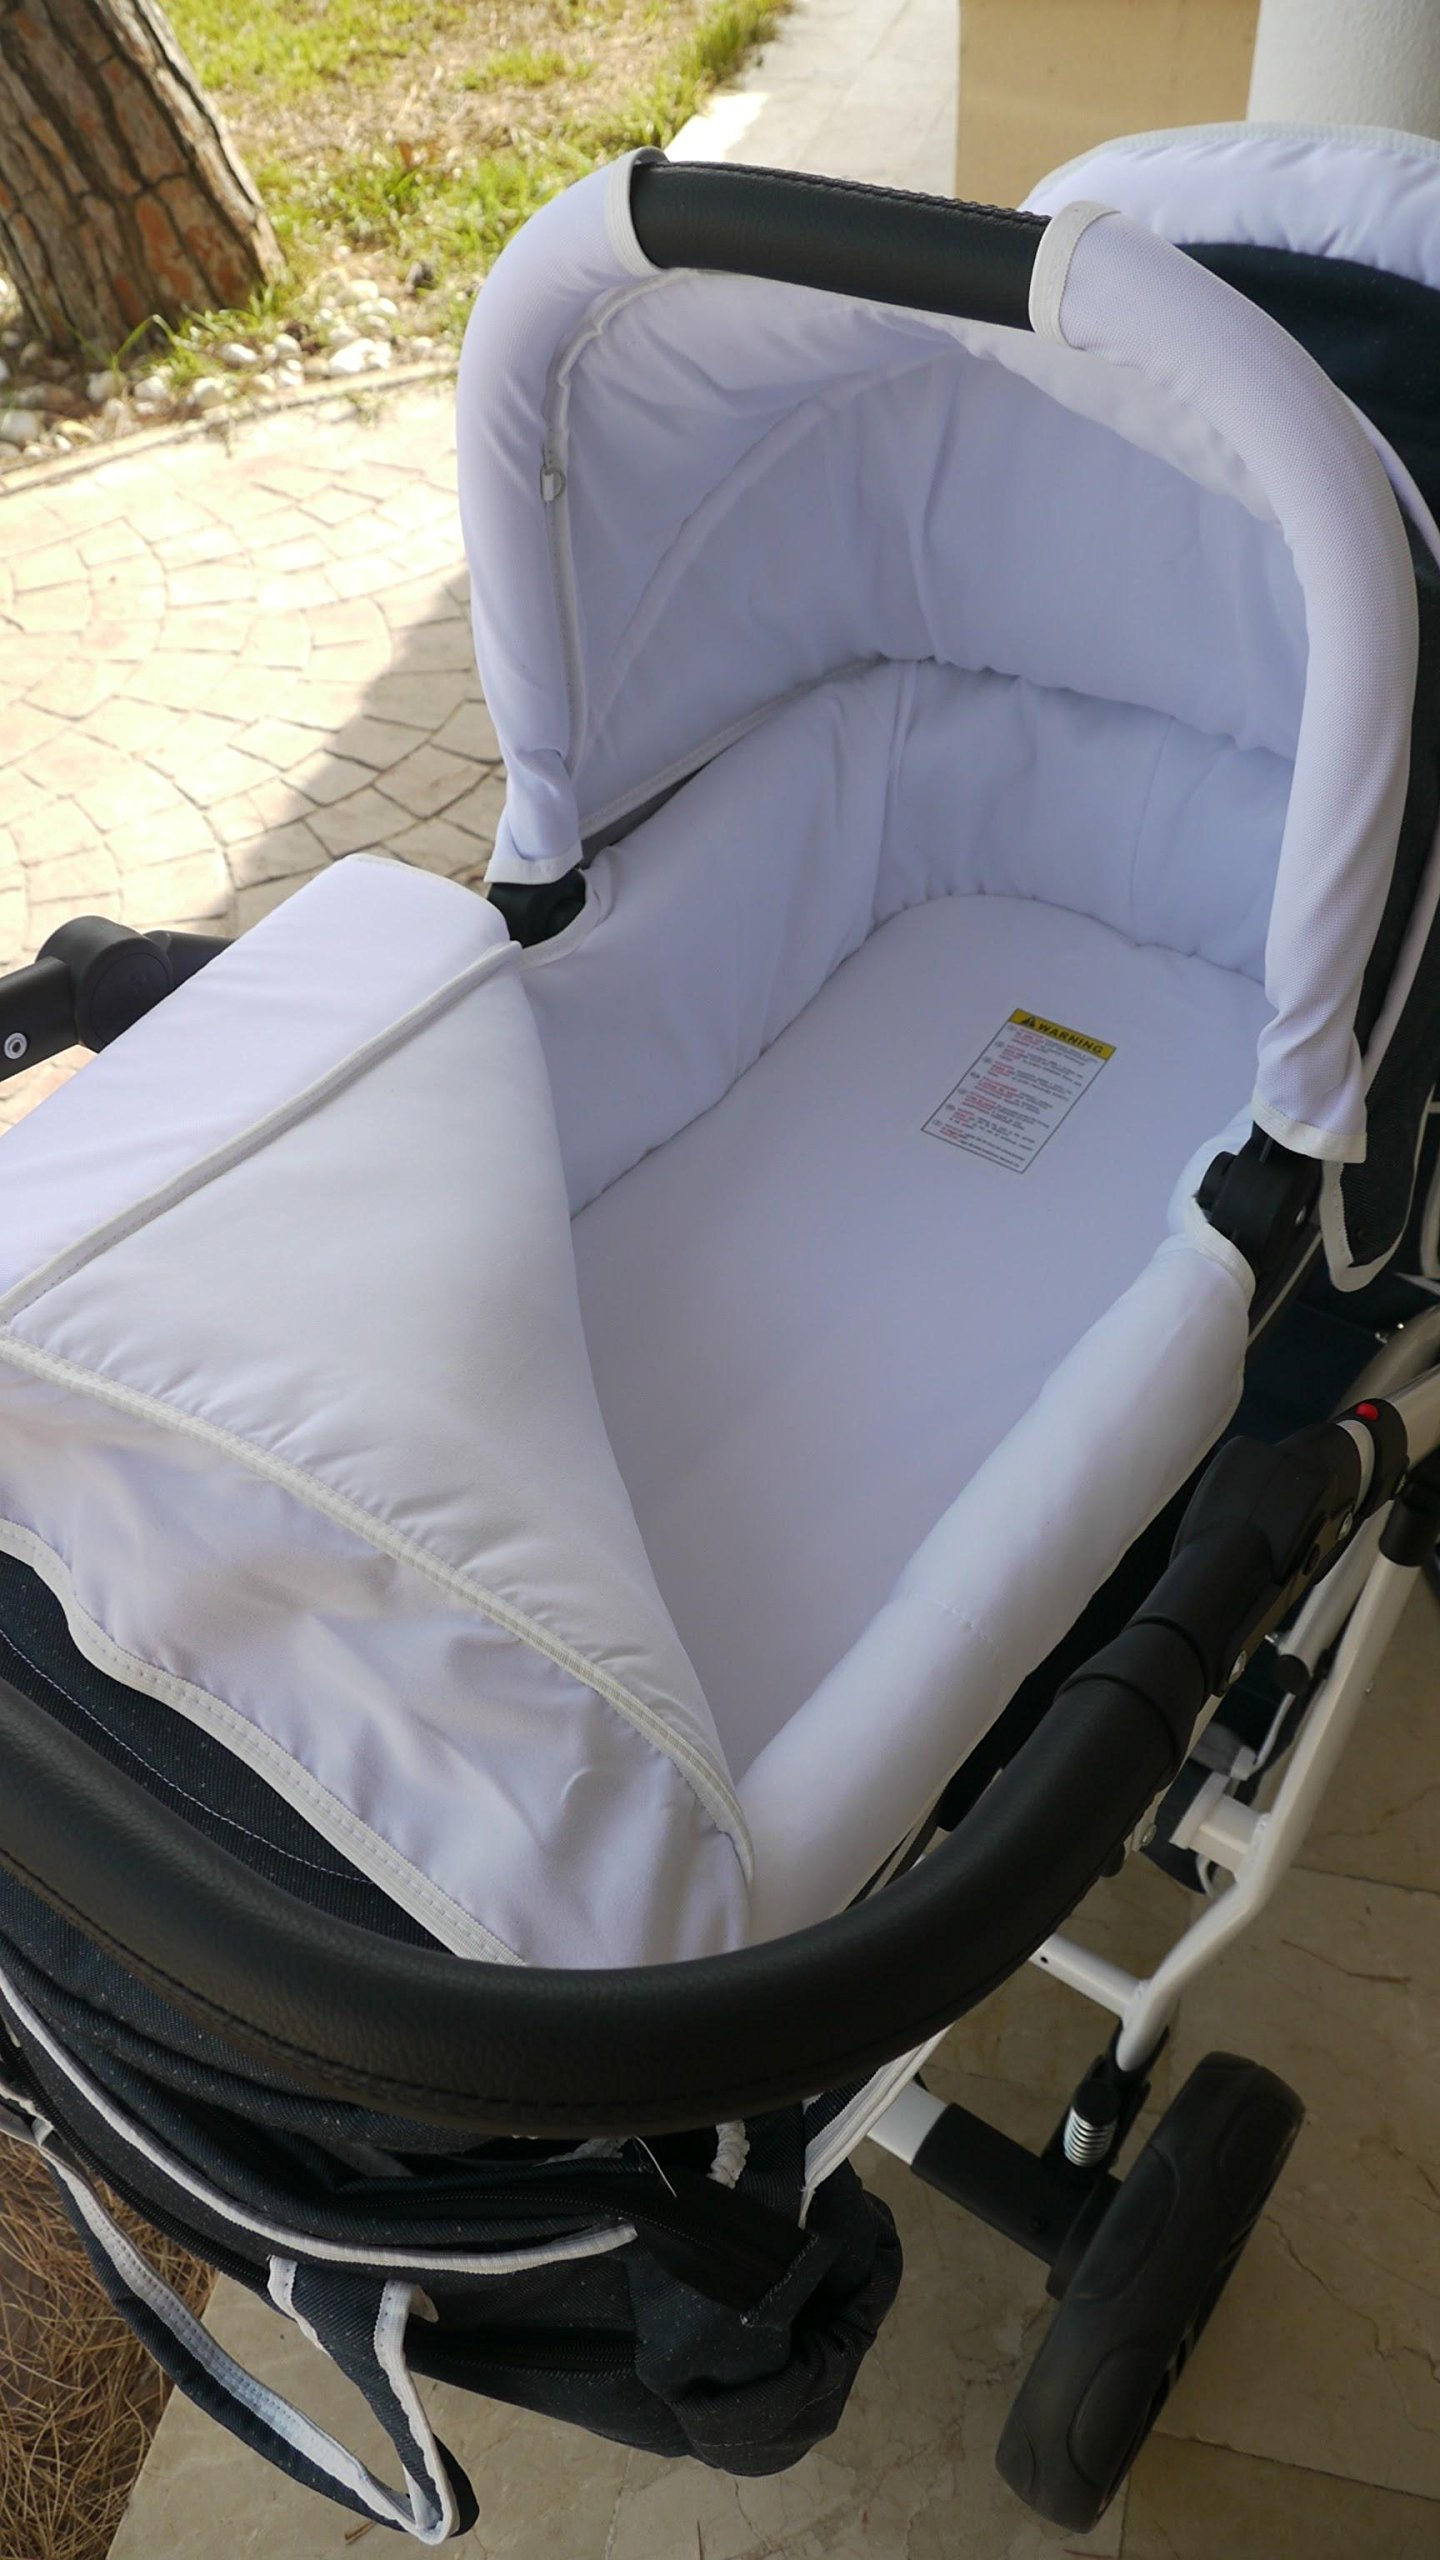 Double pram for twins. 2 carrycots + 2 buggies + 2 car seats + 2 ISOFIX bases. Jeans. BBtwin Berber Carlo Directly from the factory, warranty and advice. Made un the EU according to the regulations EN1888 and ECE44/04. Jeans+white, white chassis. Includes 2 carrycots, 2 buggy seats, 2 car seats, 2 ISOFIX bases, bag, 2 footcovers, 2 rain covers, 2 mosquito nets, lower basket Features: lightweight aluminium frame, easy bending, adjustable handlebar, central brake, lockable front swivel wheels, shock absorbers, each buggy can be instaled independently in both directions, carrycots with a mattress and a washable cover, backrest adjustable in various positions, safety bar and harness of 5 points 9